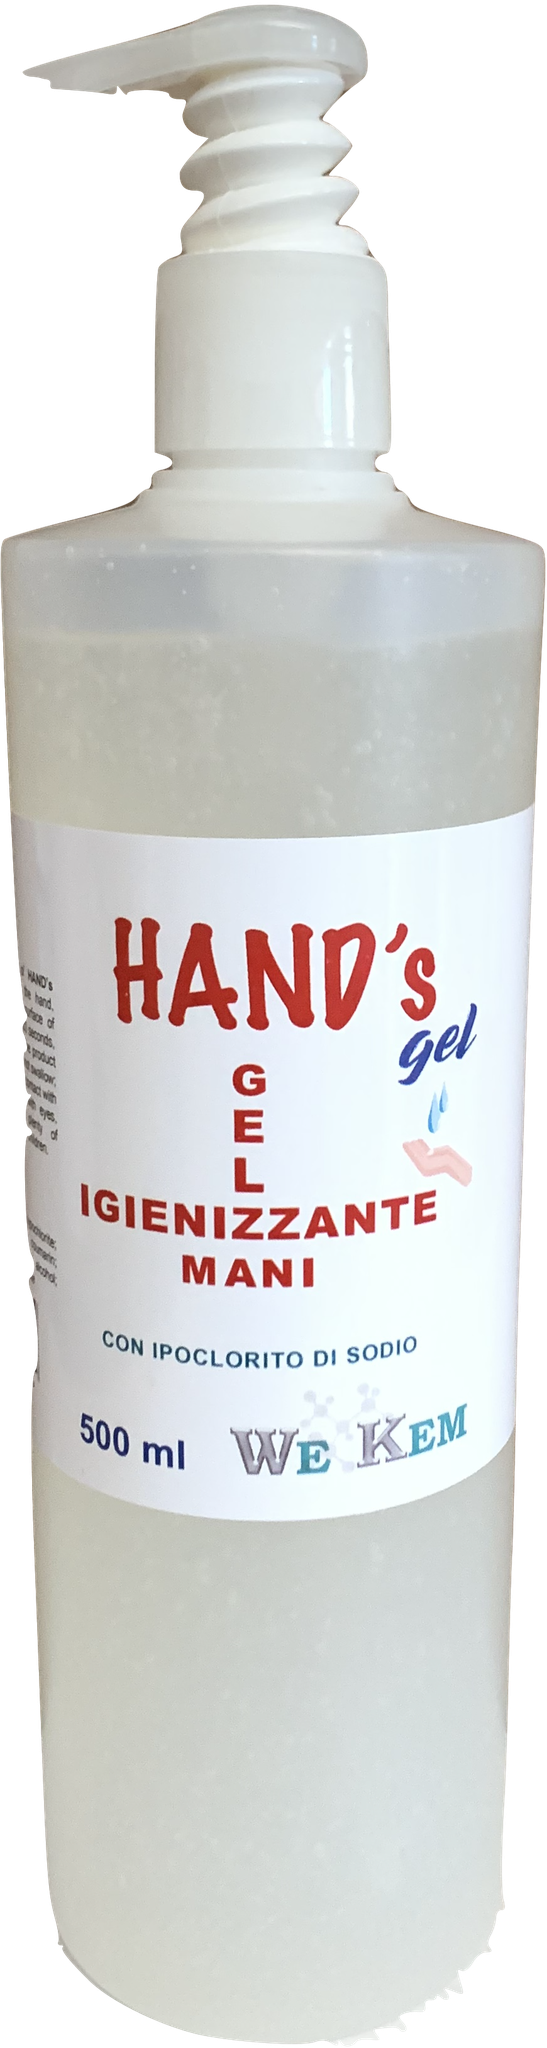 GEL IGIENIZZANTE MANI 500ml dispenser